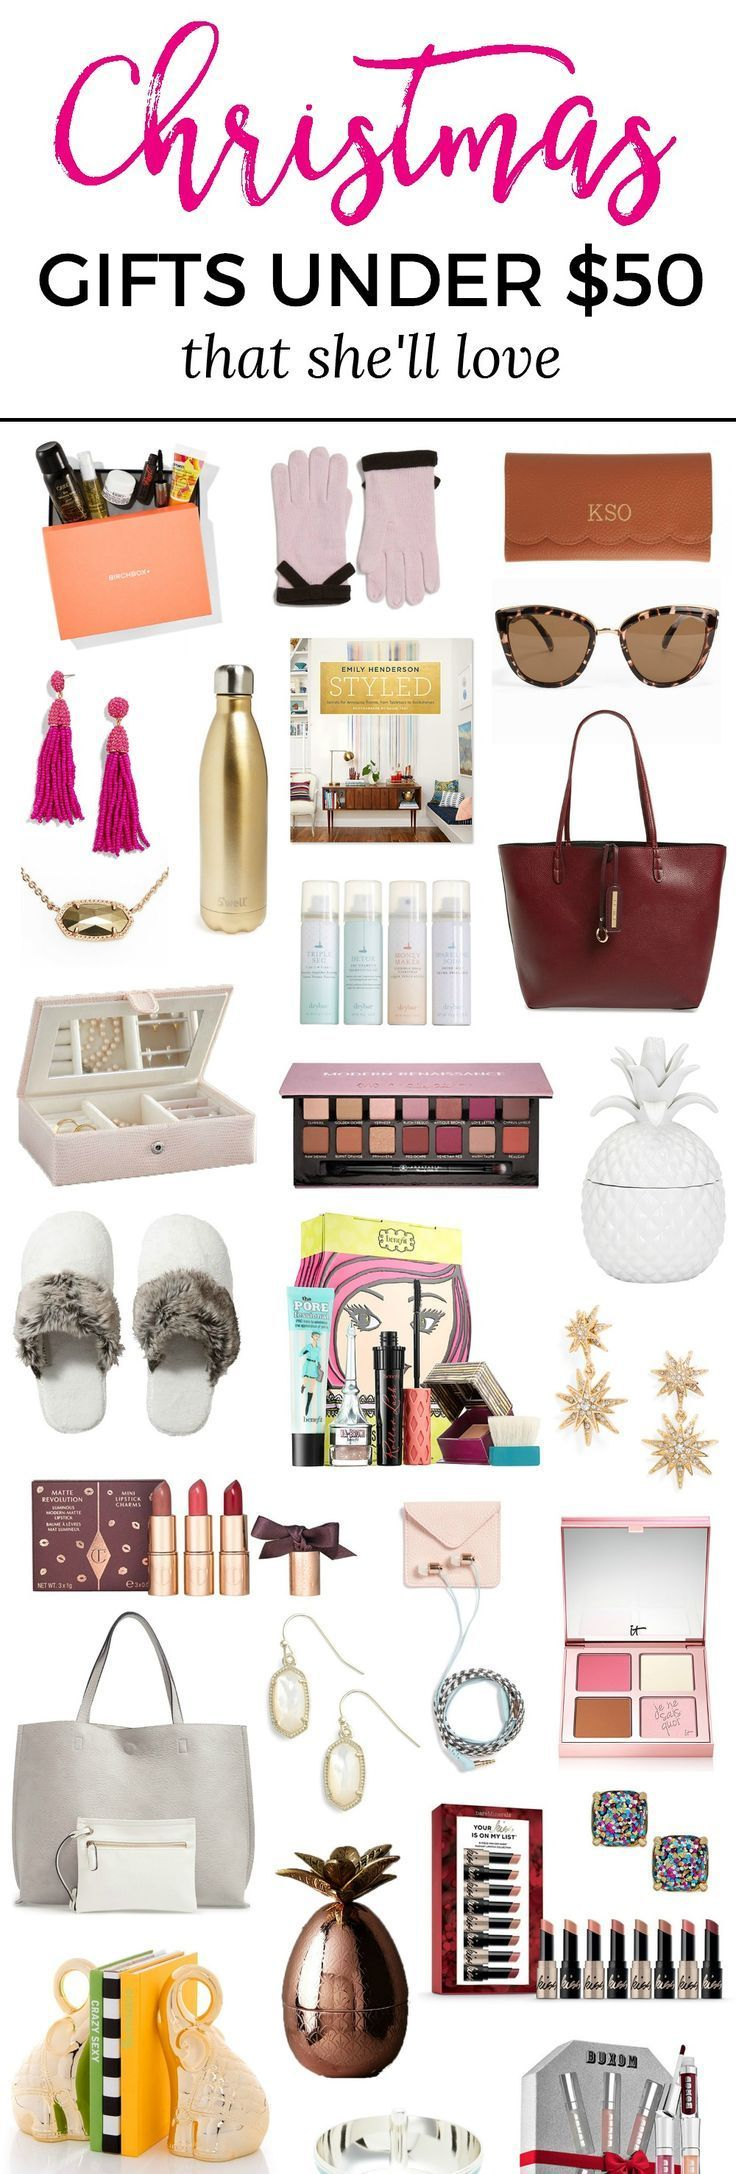 The best Christmas gift ideas for women under $ 50 ...